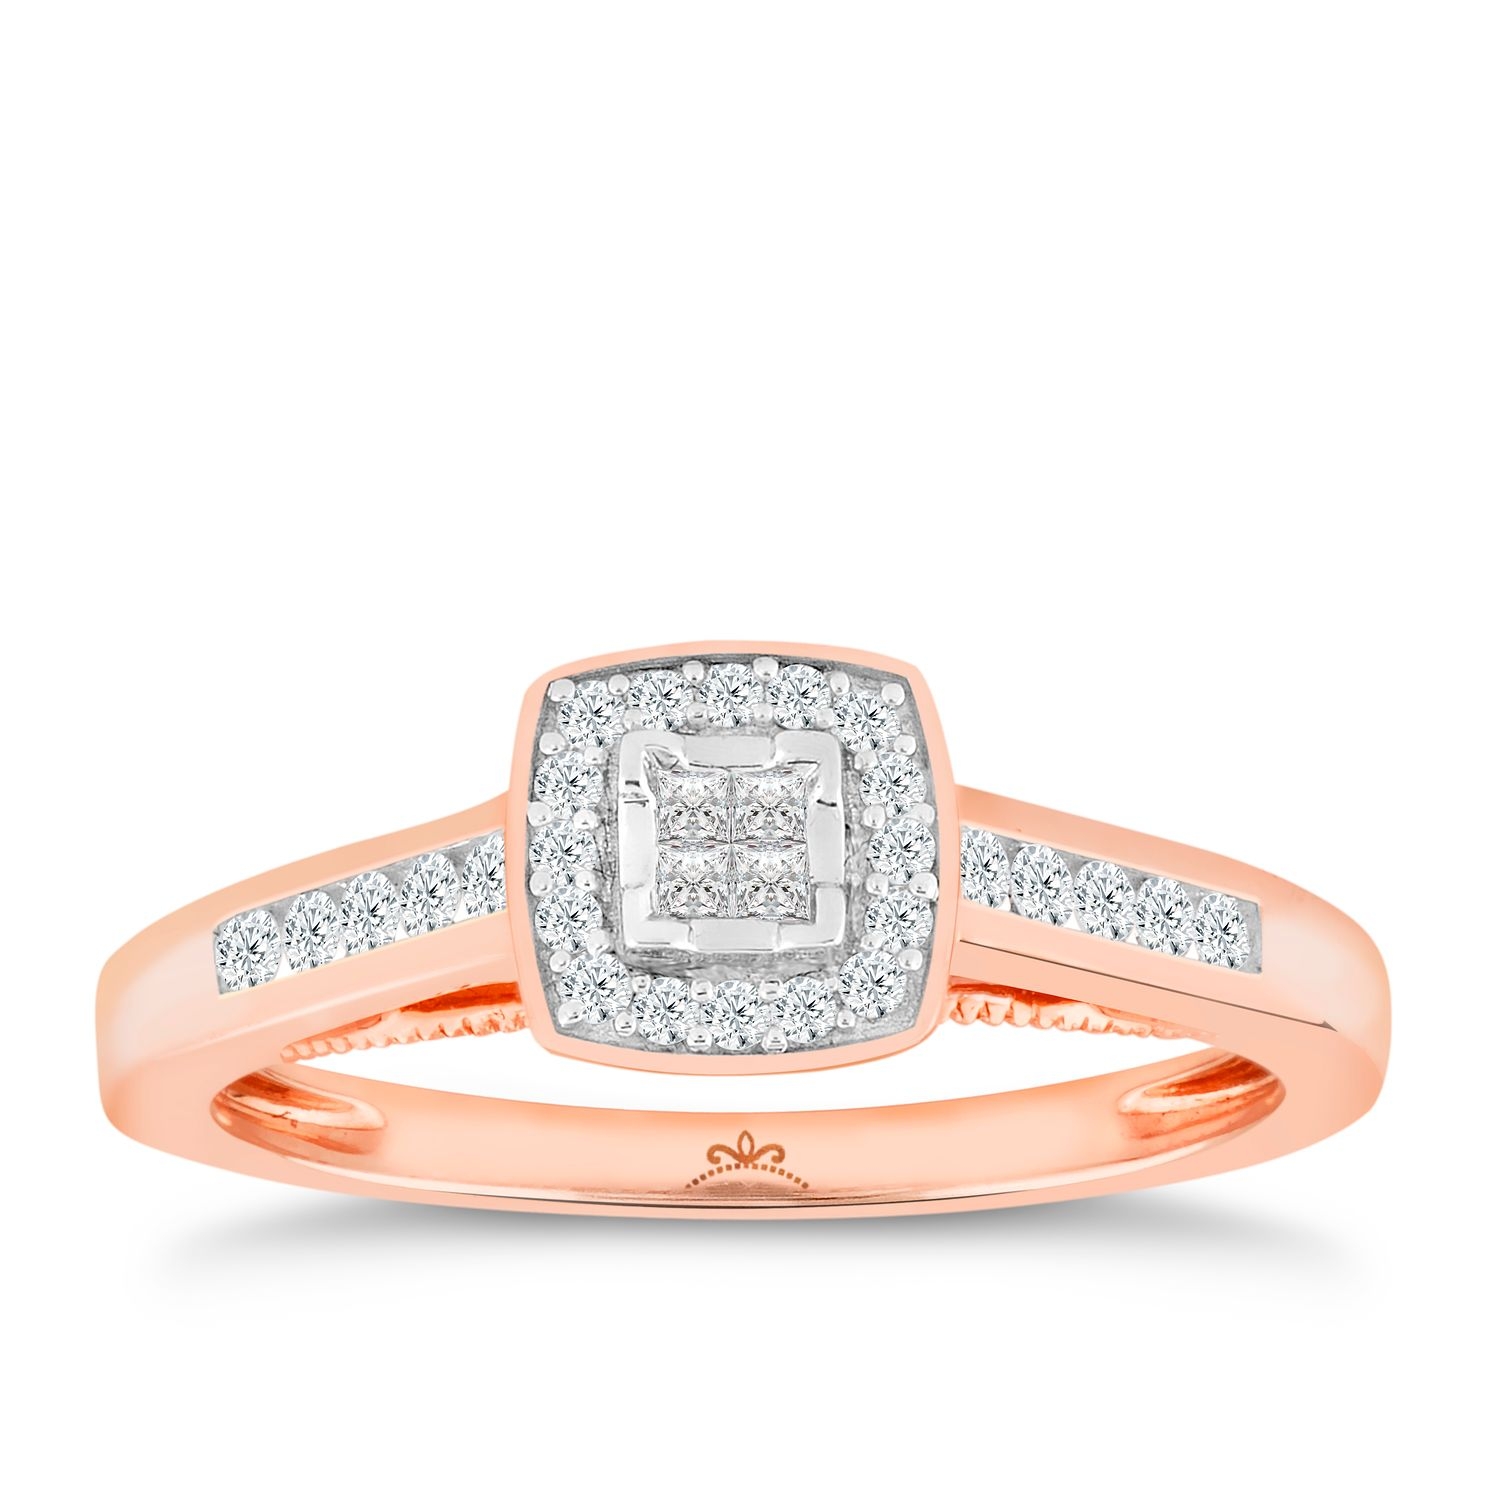 Princessa 9ct Rose Gold 0.25ct Diamond Cluster Ring - Product number 5263565